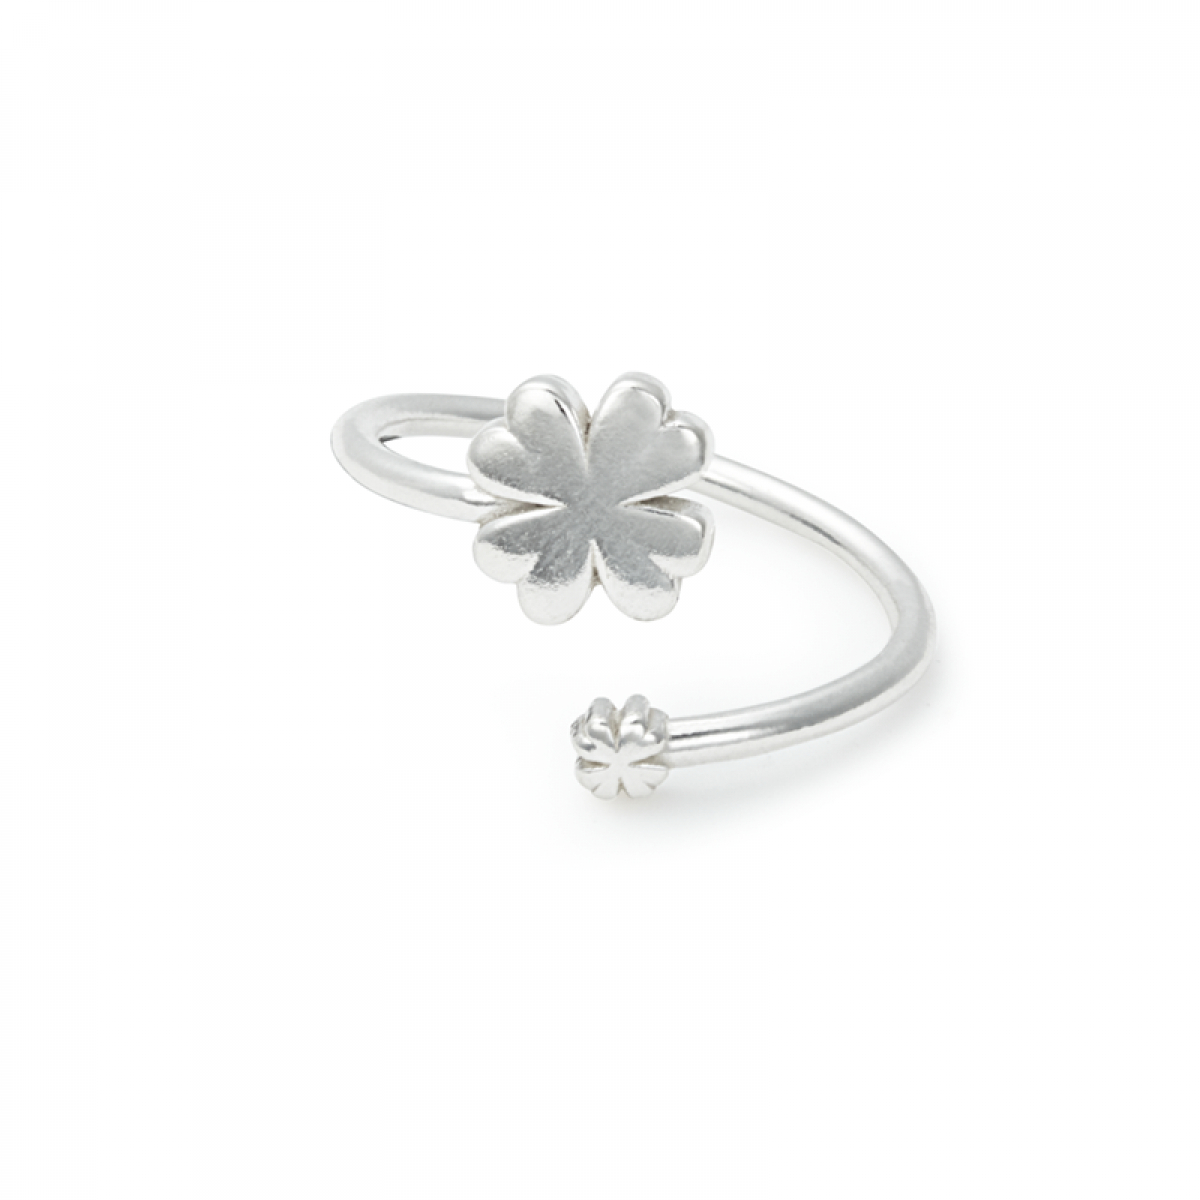 Four Leaf Clover Ring Wrap In Sterling Silver| Alex And Ani Intended For 2018 Dangling Four Leaf Clover Rings (View 15 of 25)